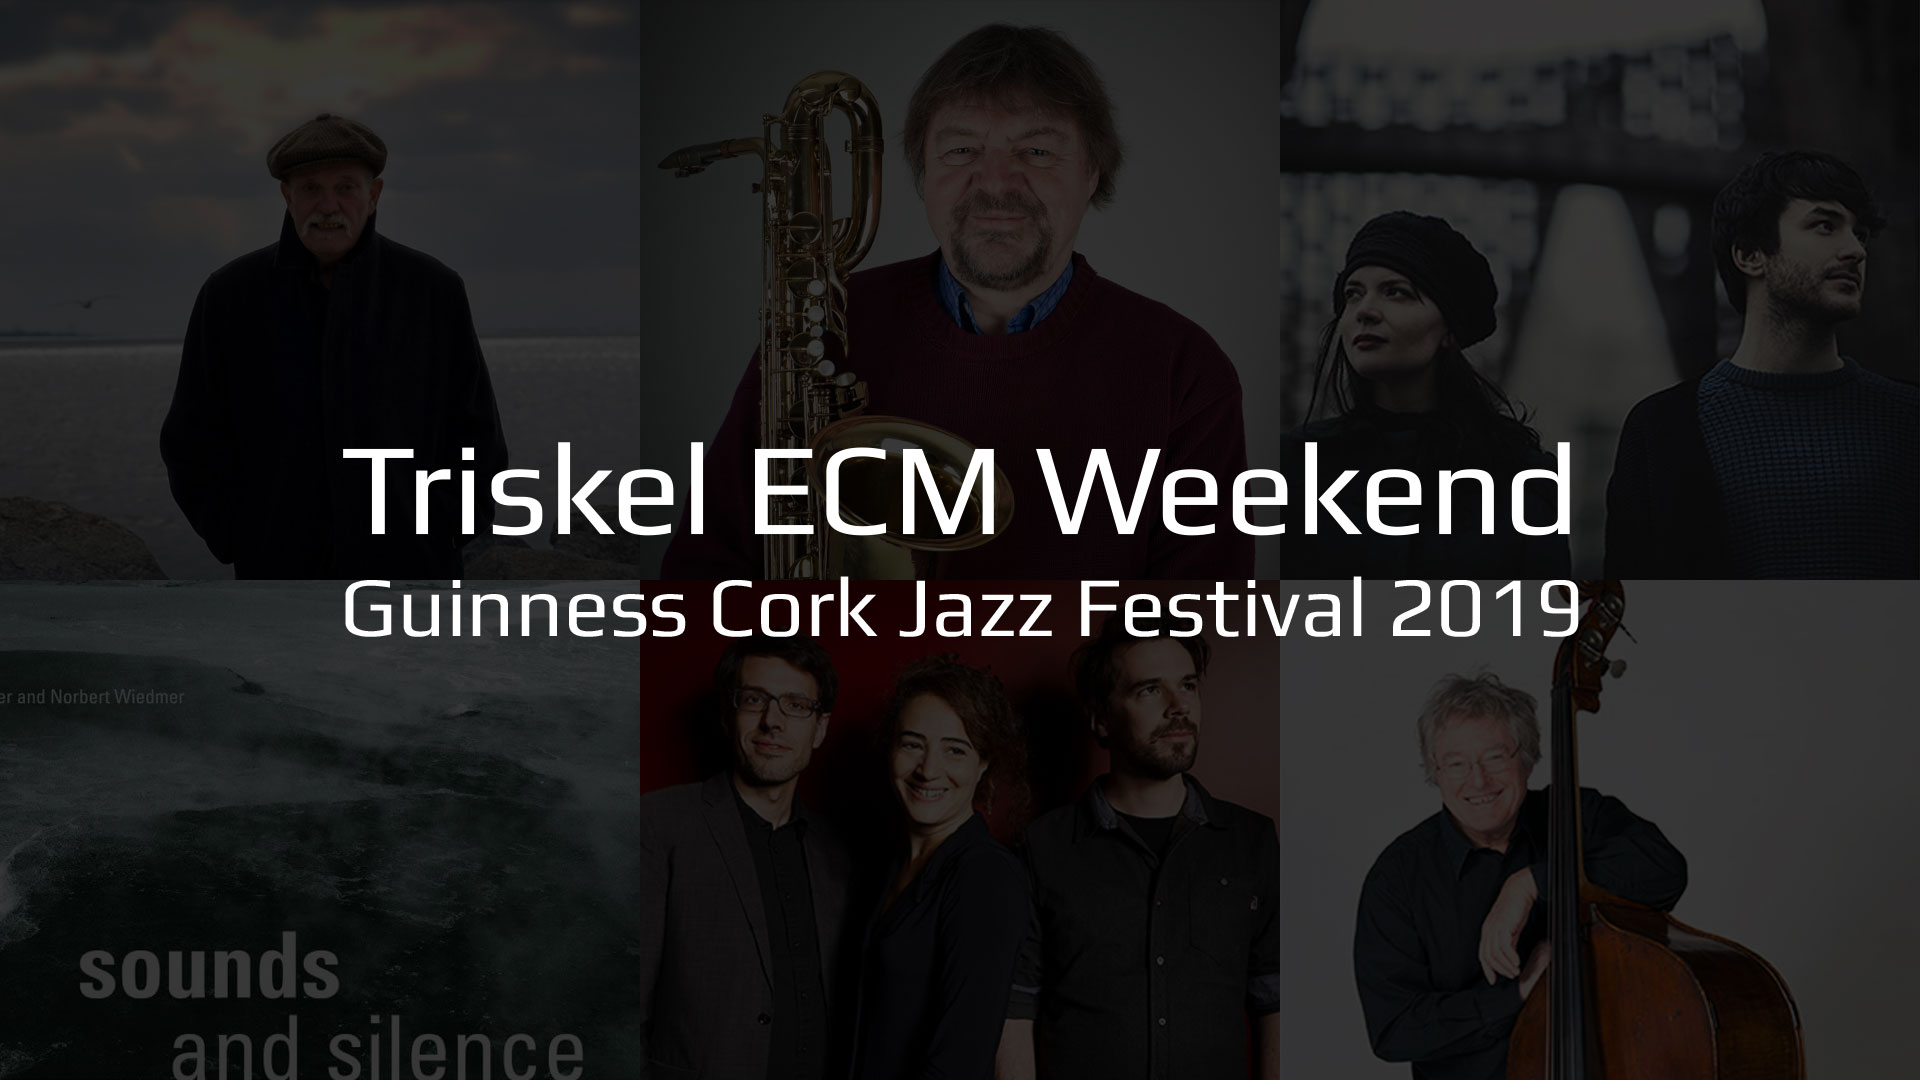 Triskel ECM Weekend at the Guinness Cork Jazz Festival 2019